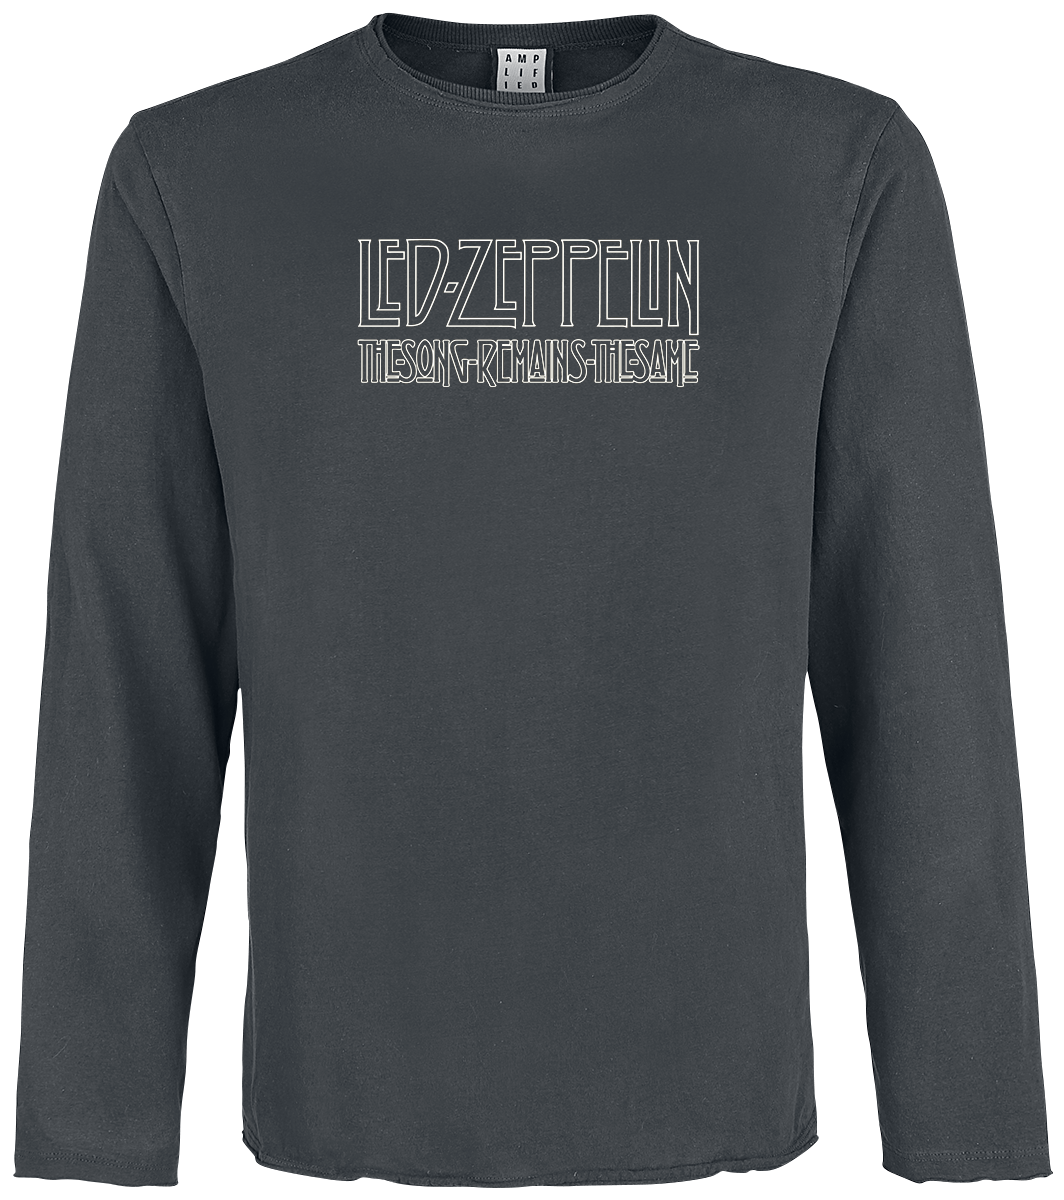 Led Zeppelin - Amplified Collection - The Song Remains The Same - Longsleeve - charcoal image